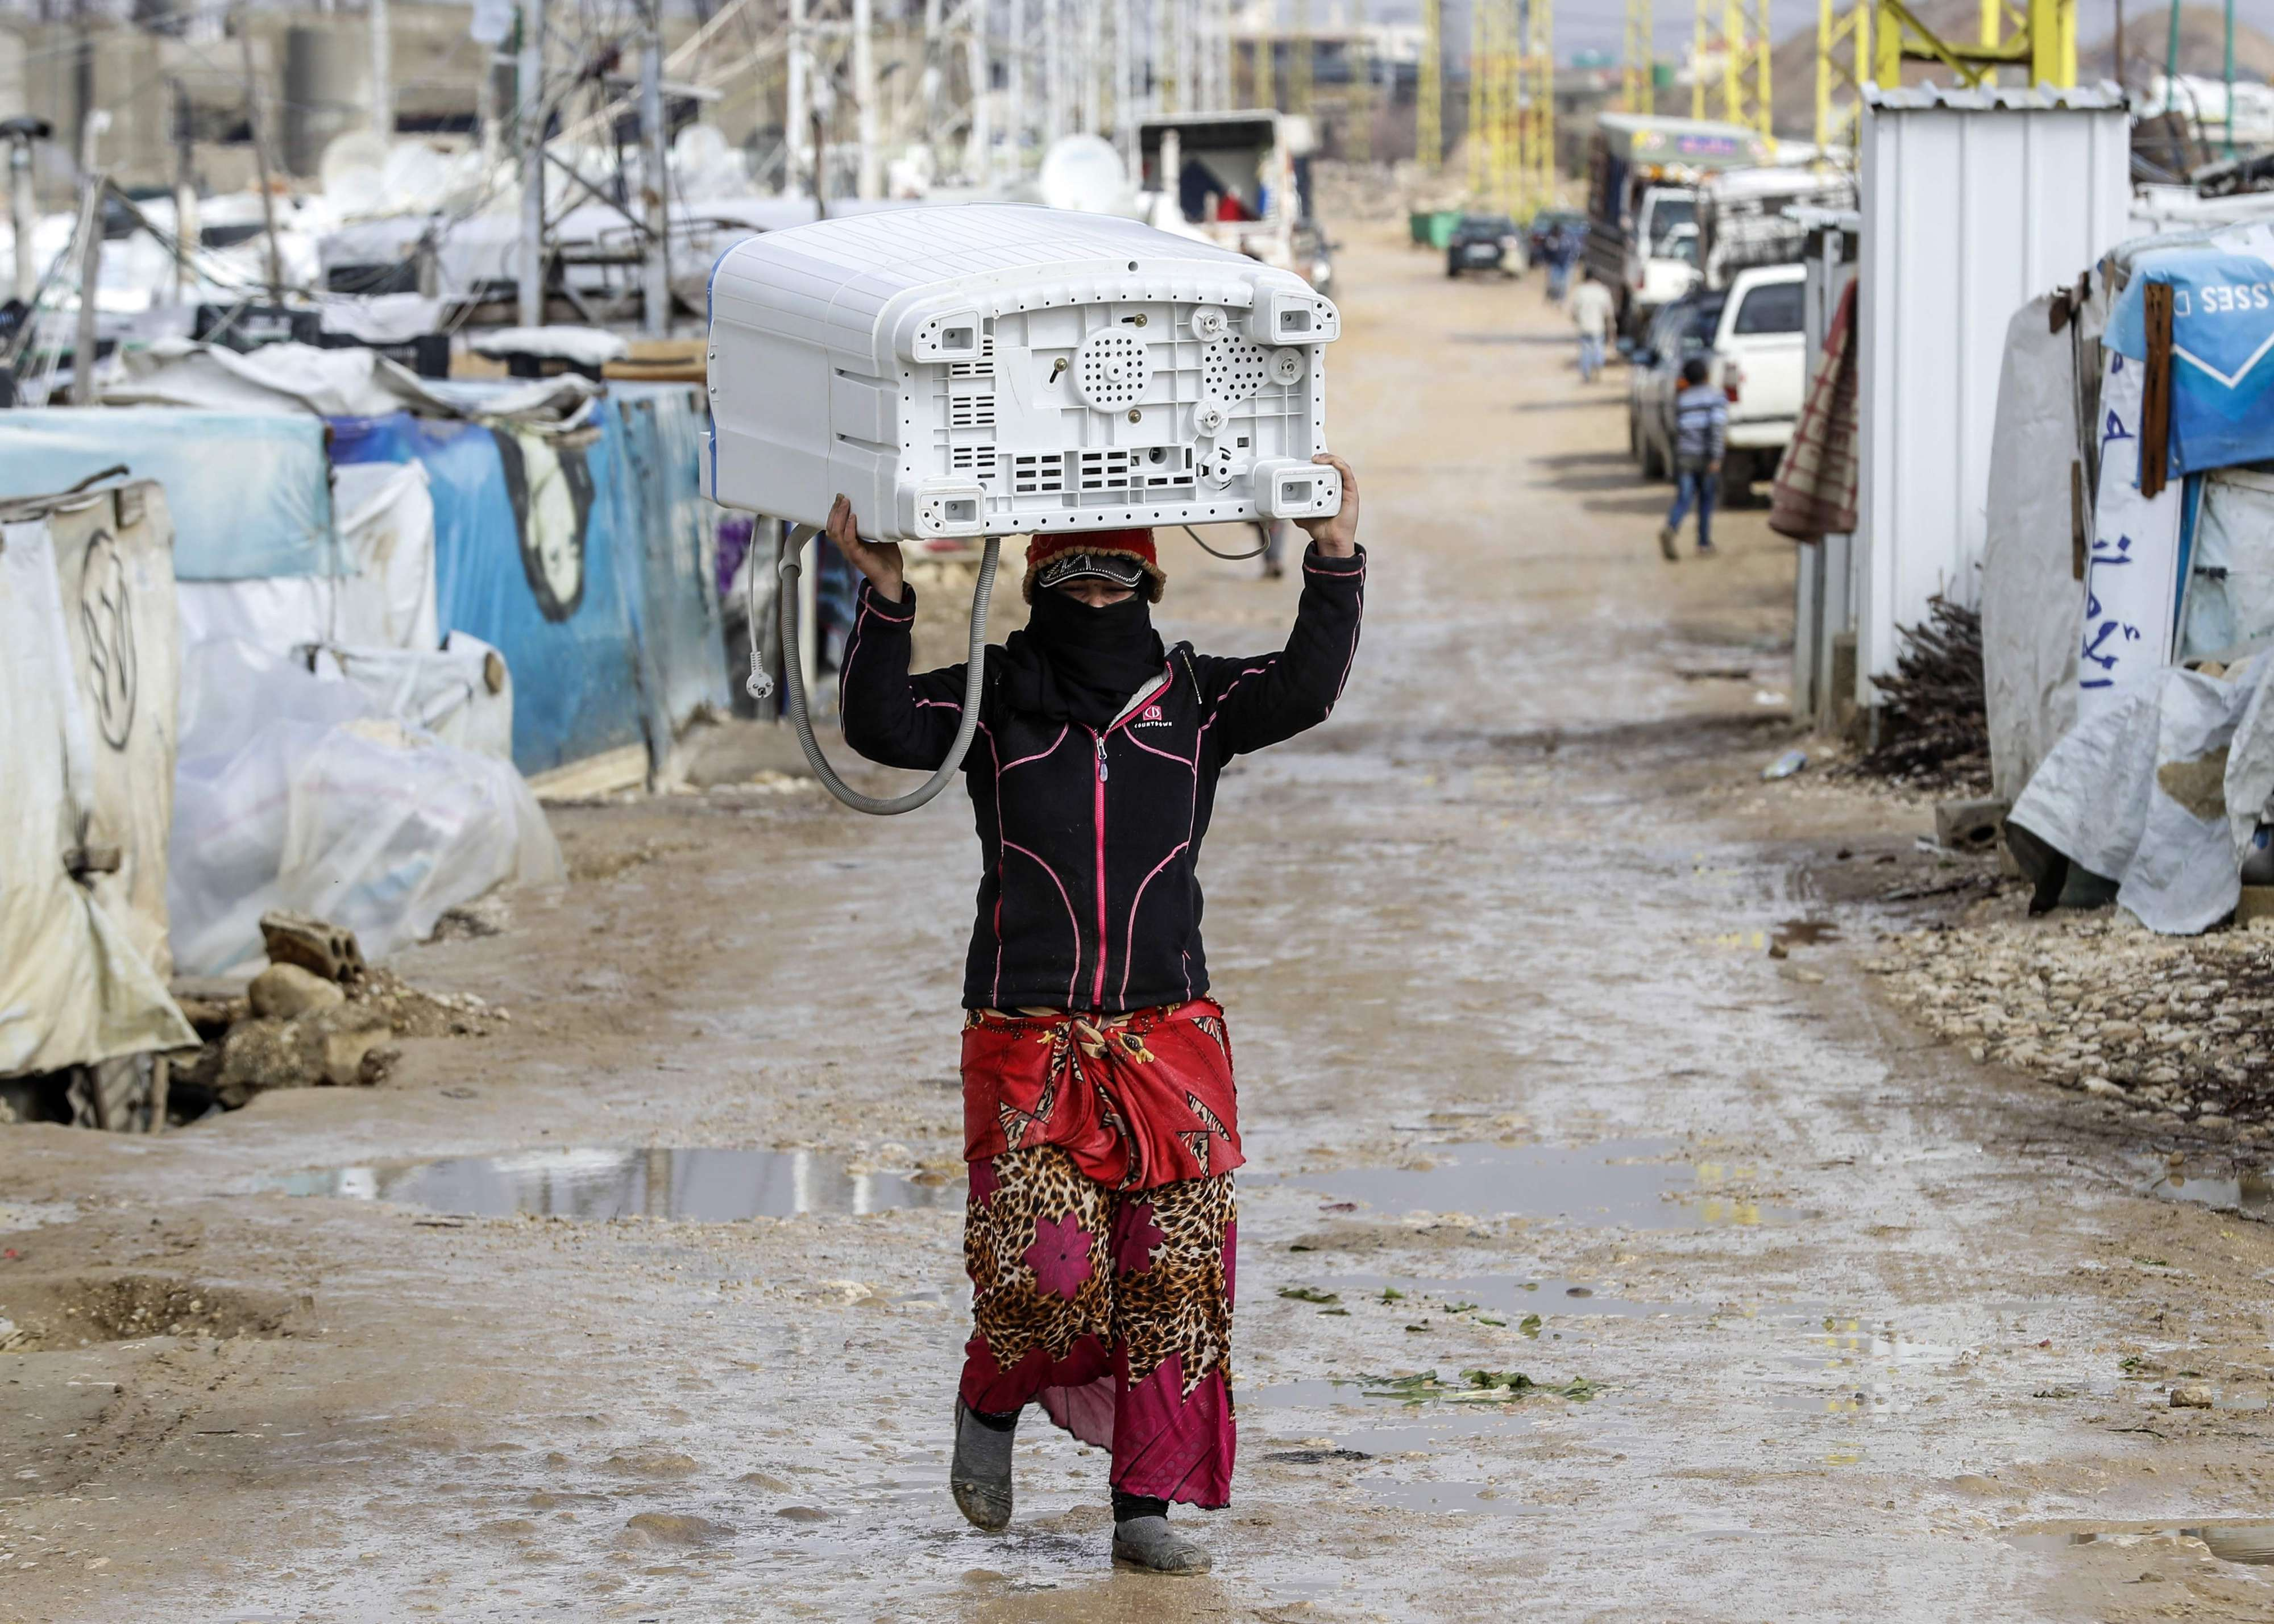 A Syrian woman carries a washing machine above her head as she walks down through the tents and shelters at a refugee camp on the outskirts of the town of Zahle in Lebanon's Bekaa Valley, on January 26. (AFP)